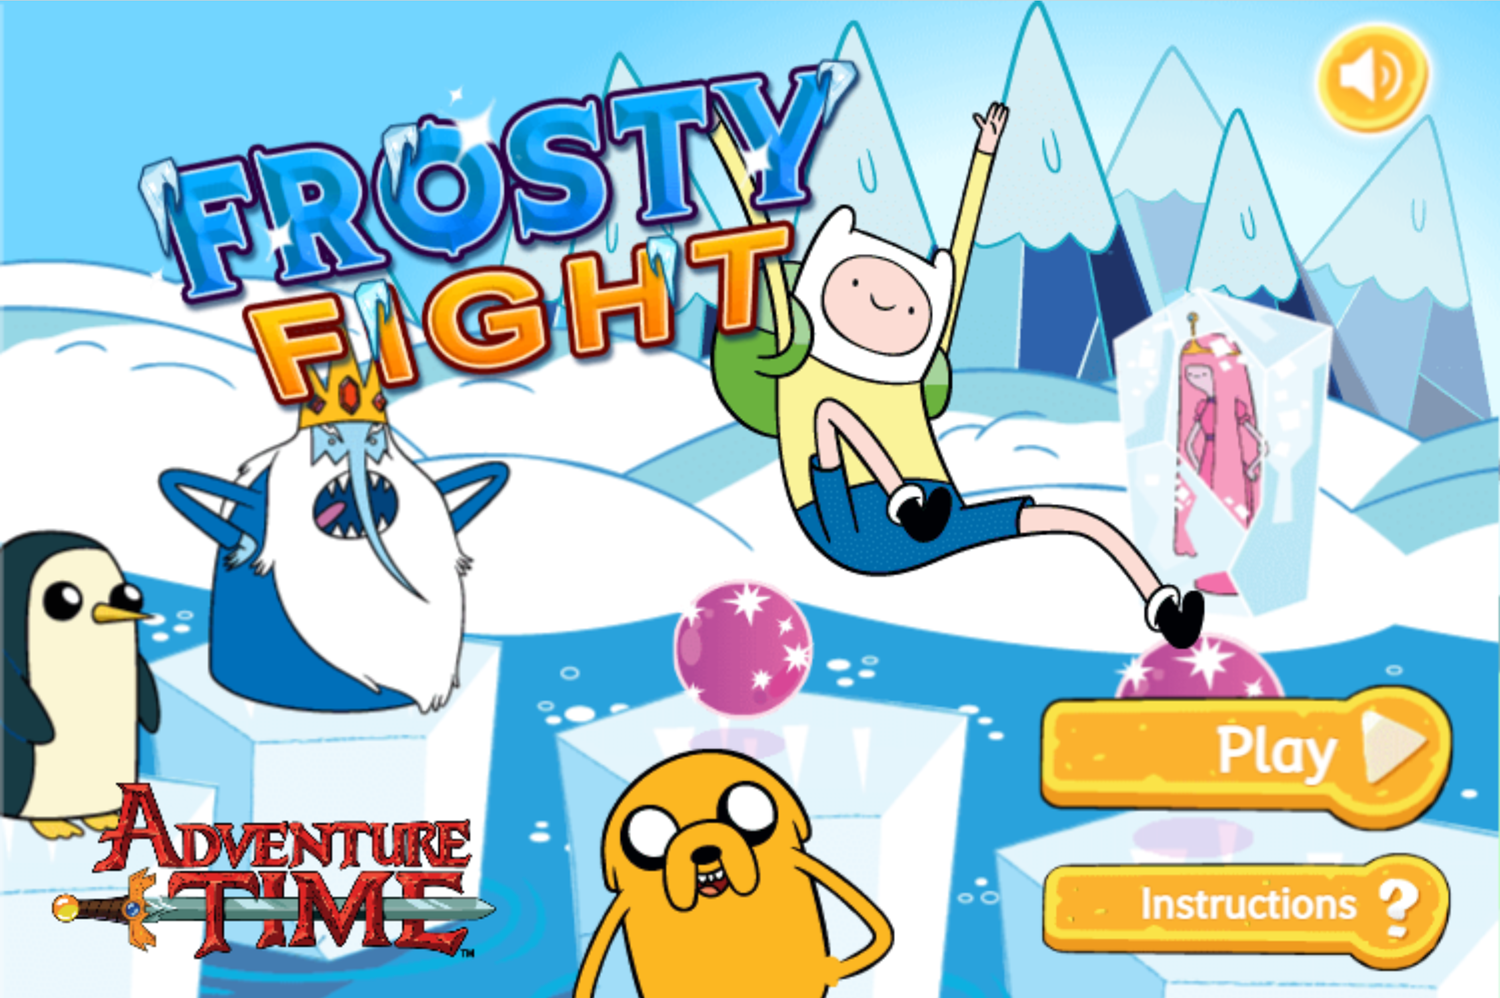 Adventure Time Frosty Fight Welcome Screen Screenshot.